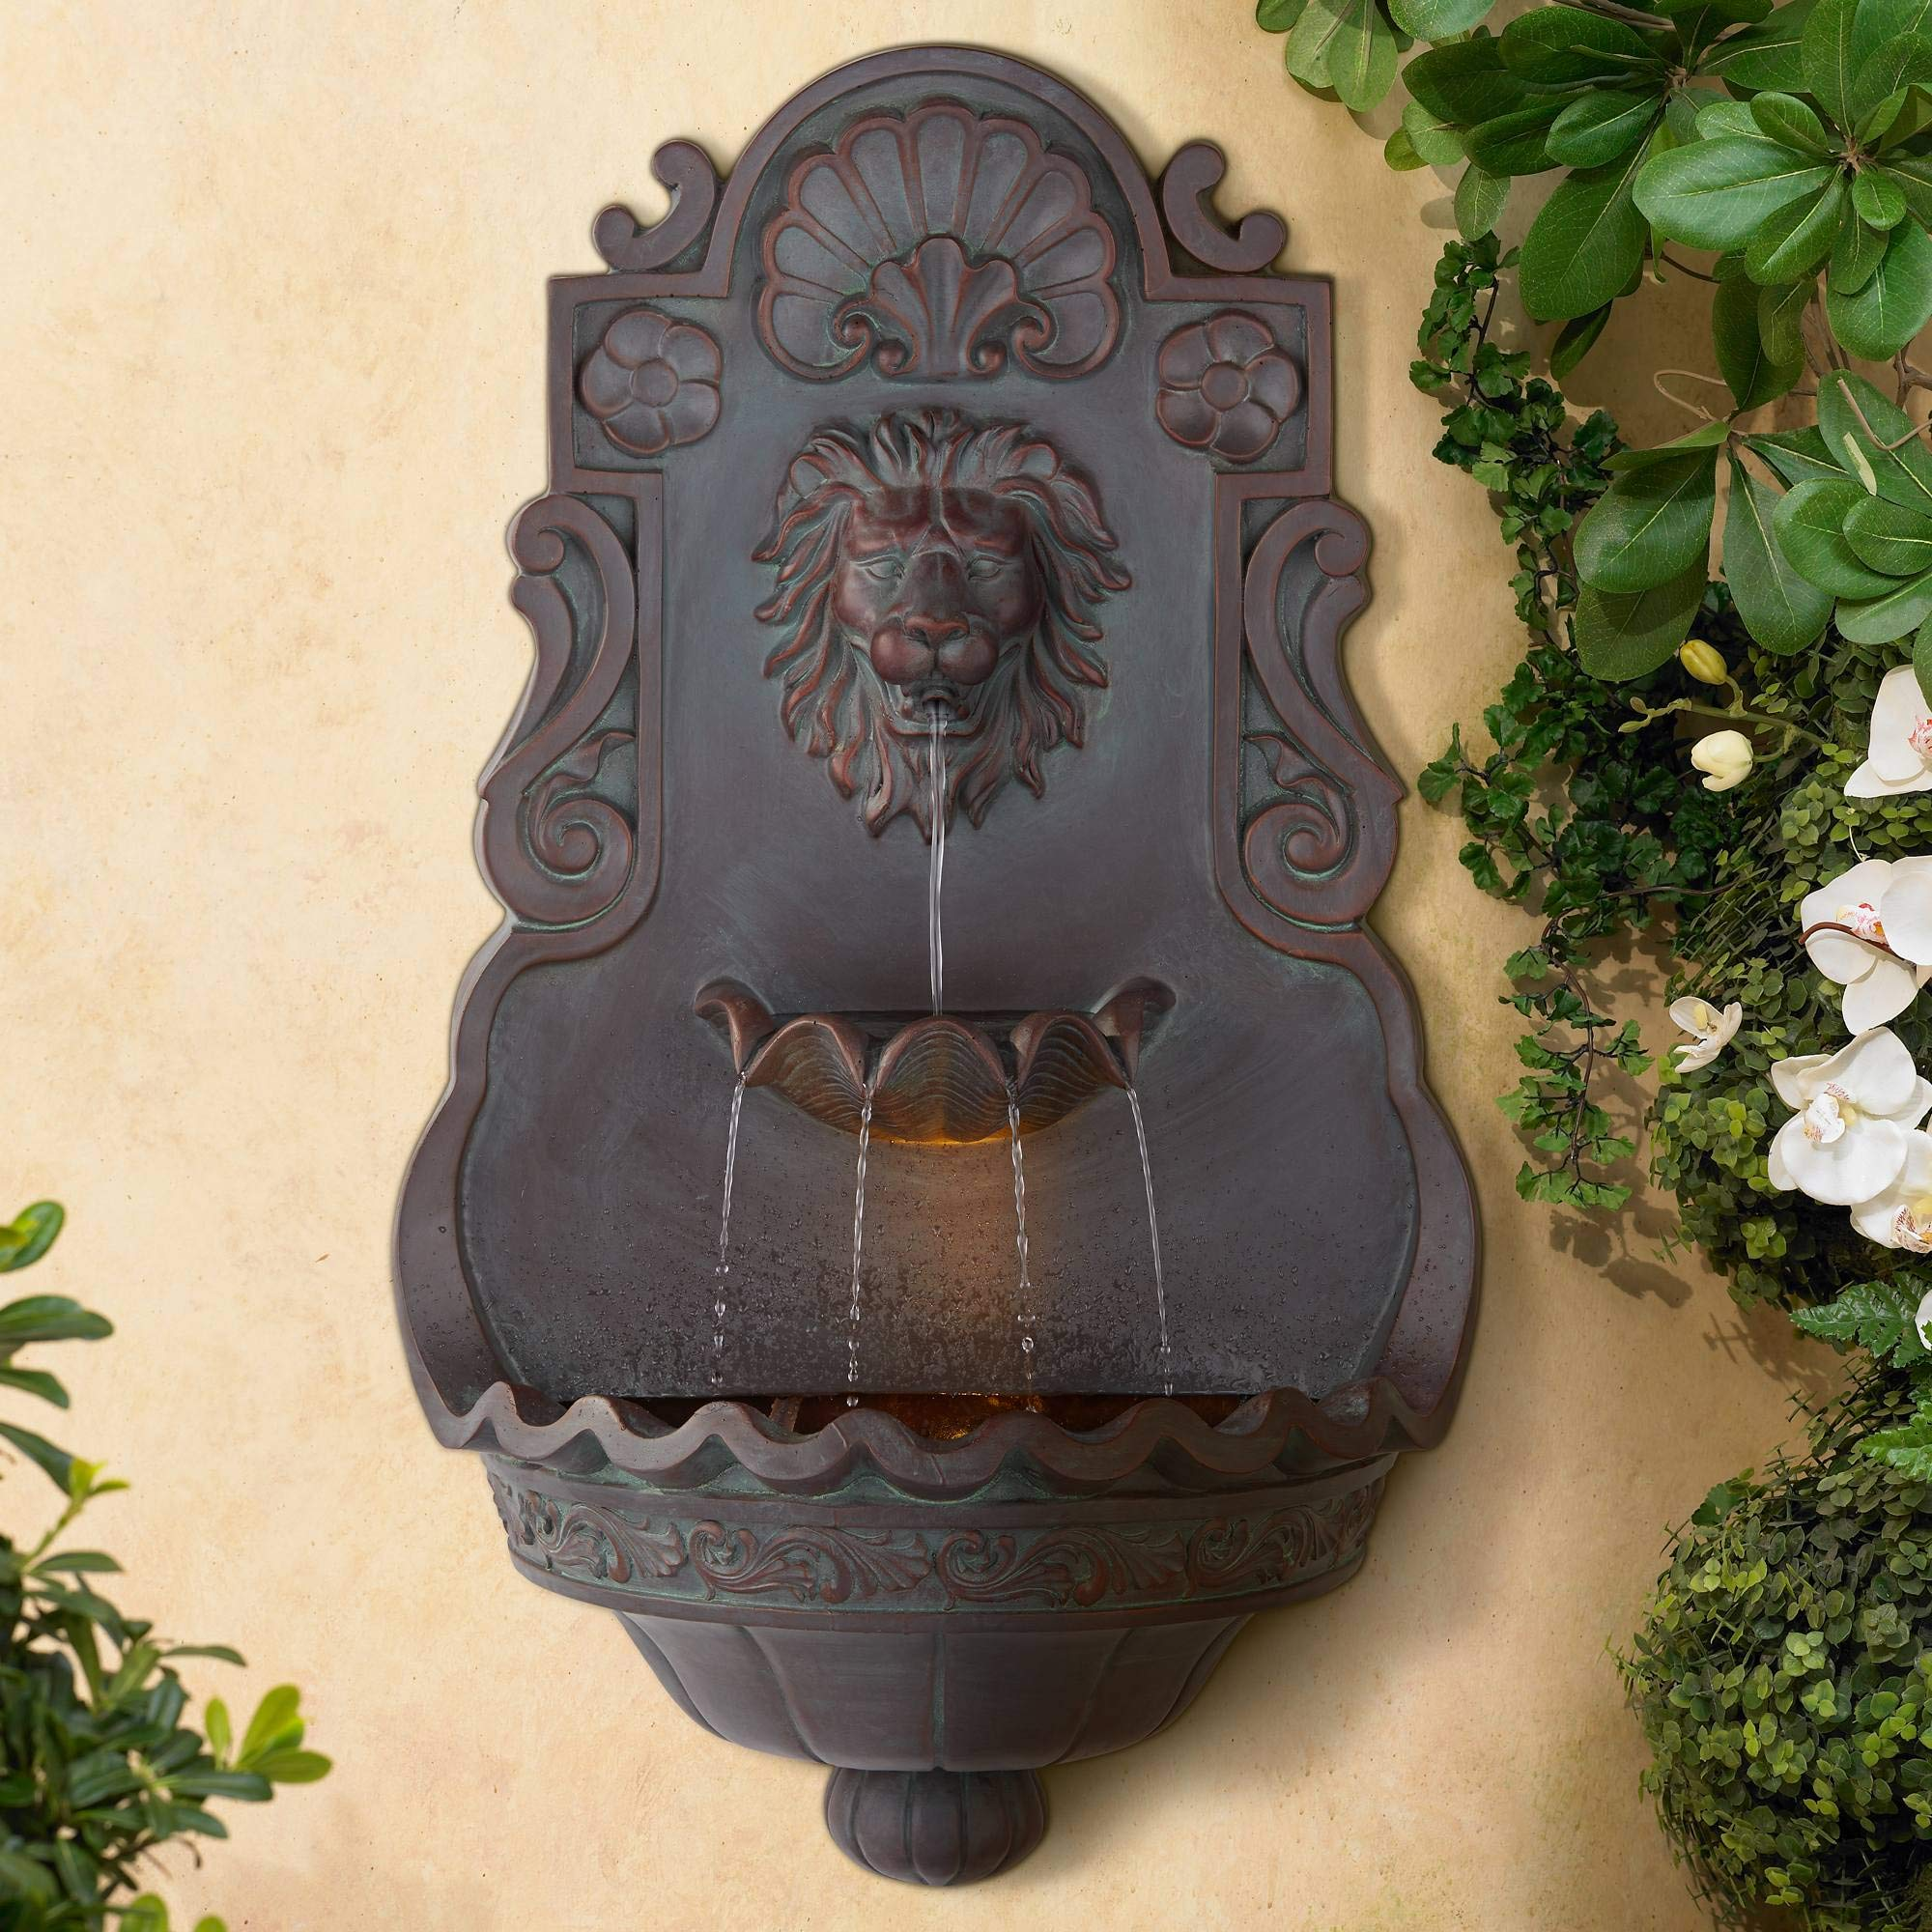 """Lion Head Roman Outdoor Wall Water Fountain with Light 31 1/2"""" High 2 Tiered for Yard Garden Patio Deck Home - John Timberland"""